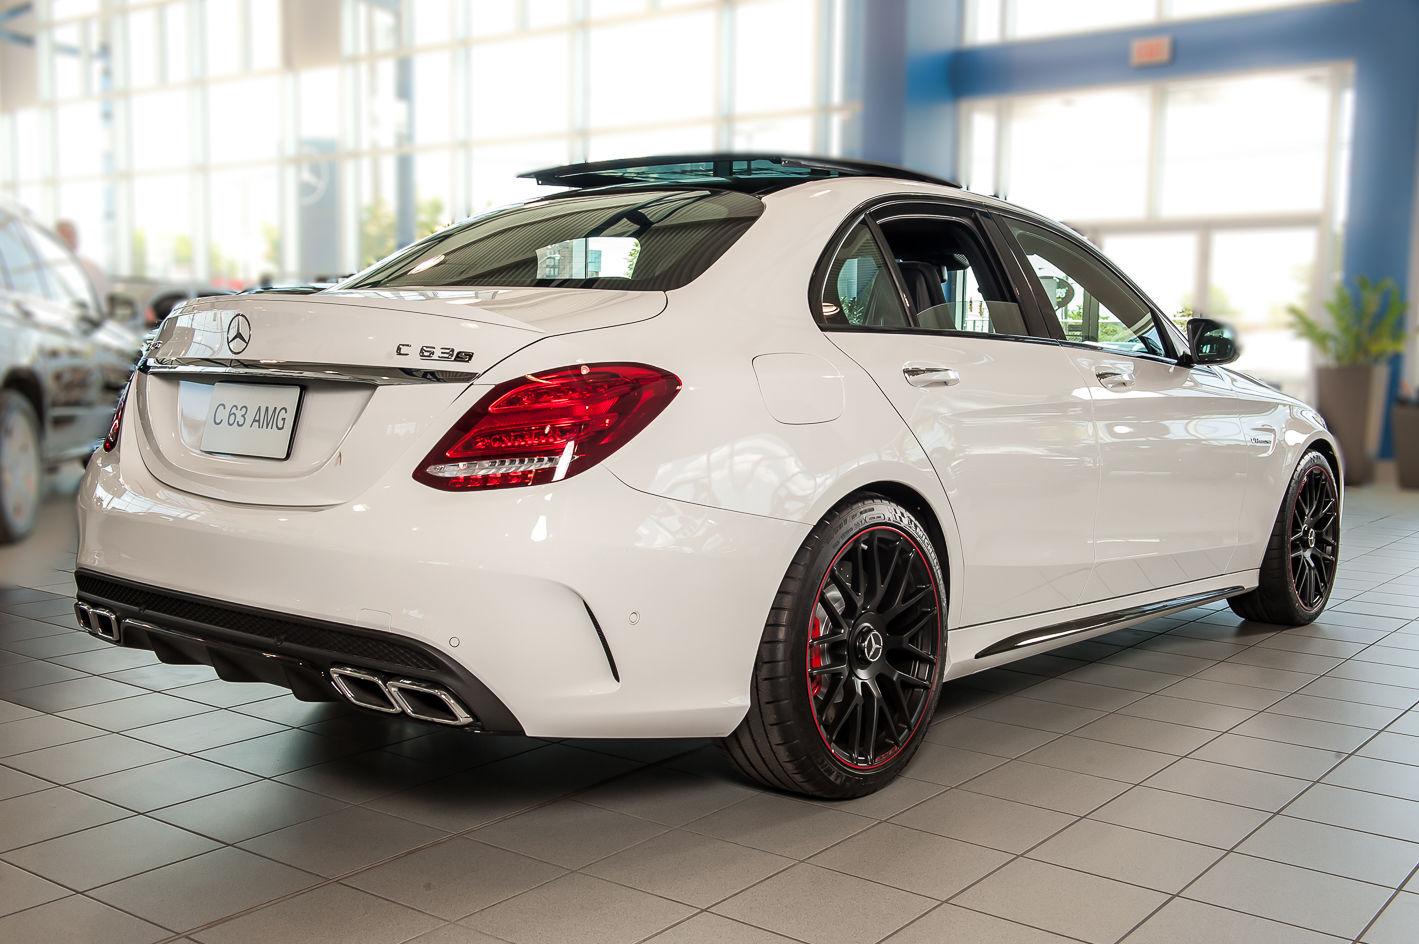 New 2015 mercedes benz c63 amg s sedan for sale in ottawa for Mercedes benz chandler inventory